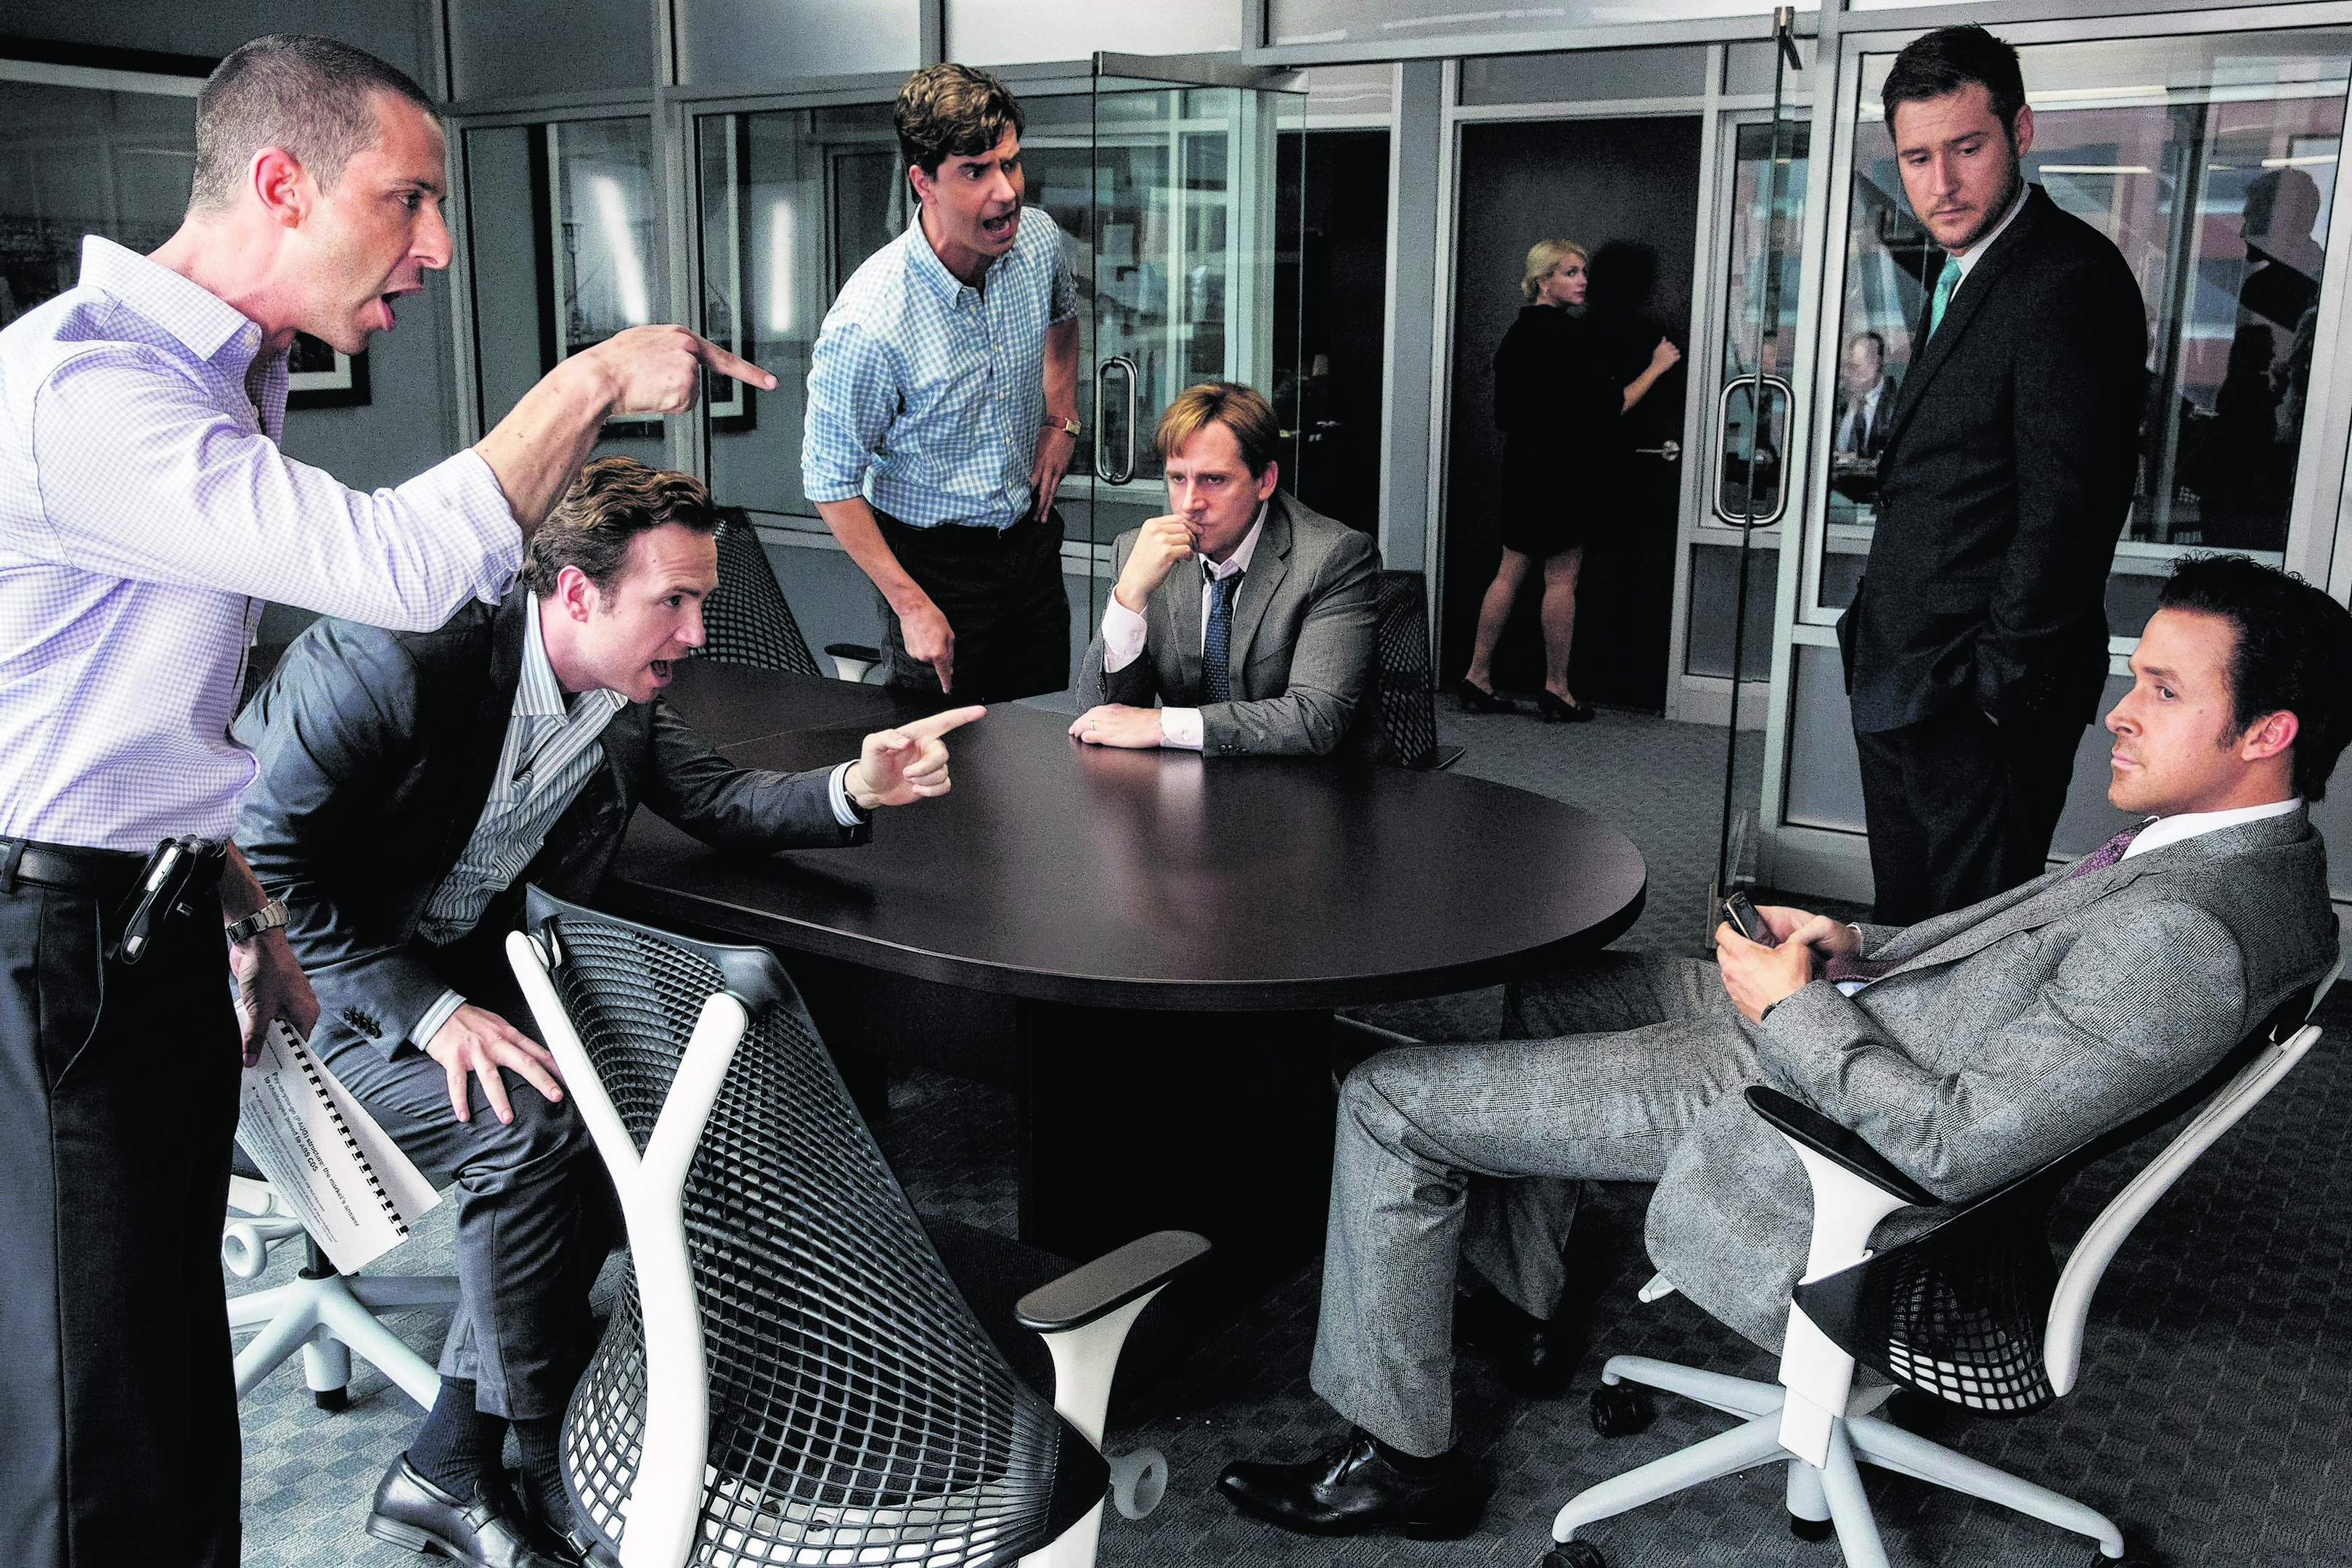 From left: Jeremy Strong, Rafe Spall, Hamish Linklater, Steve Carell, Jeffry Griffin and Ryan Gosling in The Big Short